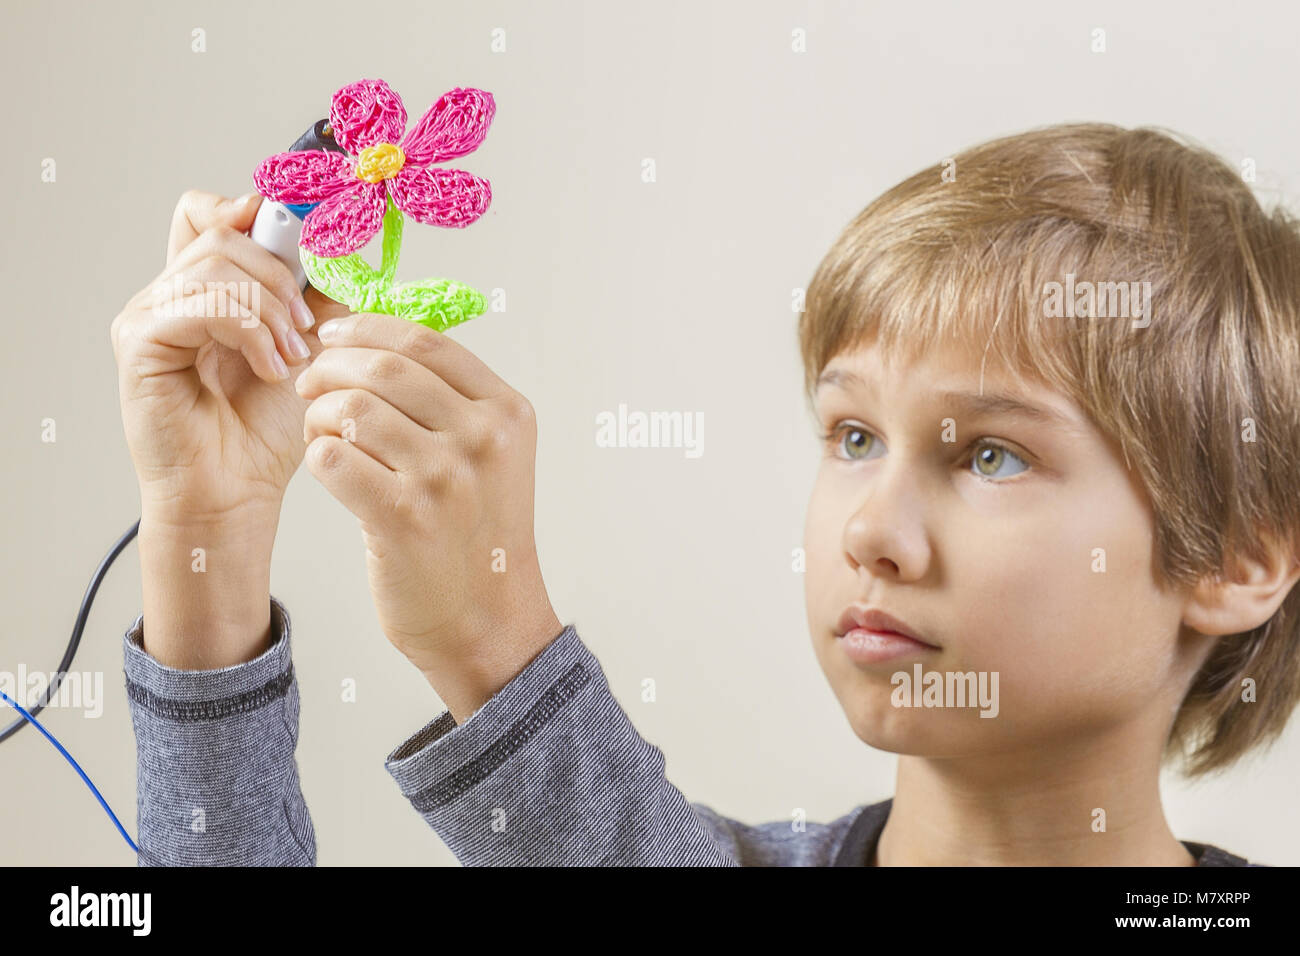 Child creating with 3D pen - Stock Image